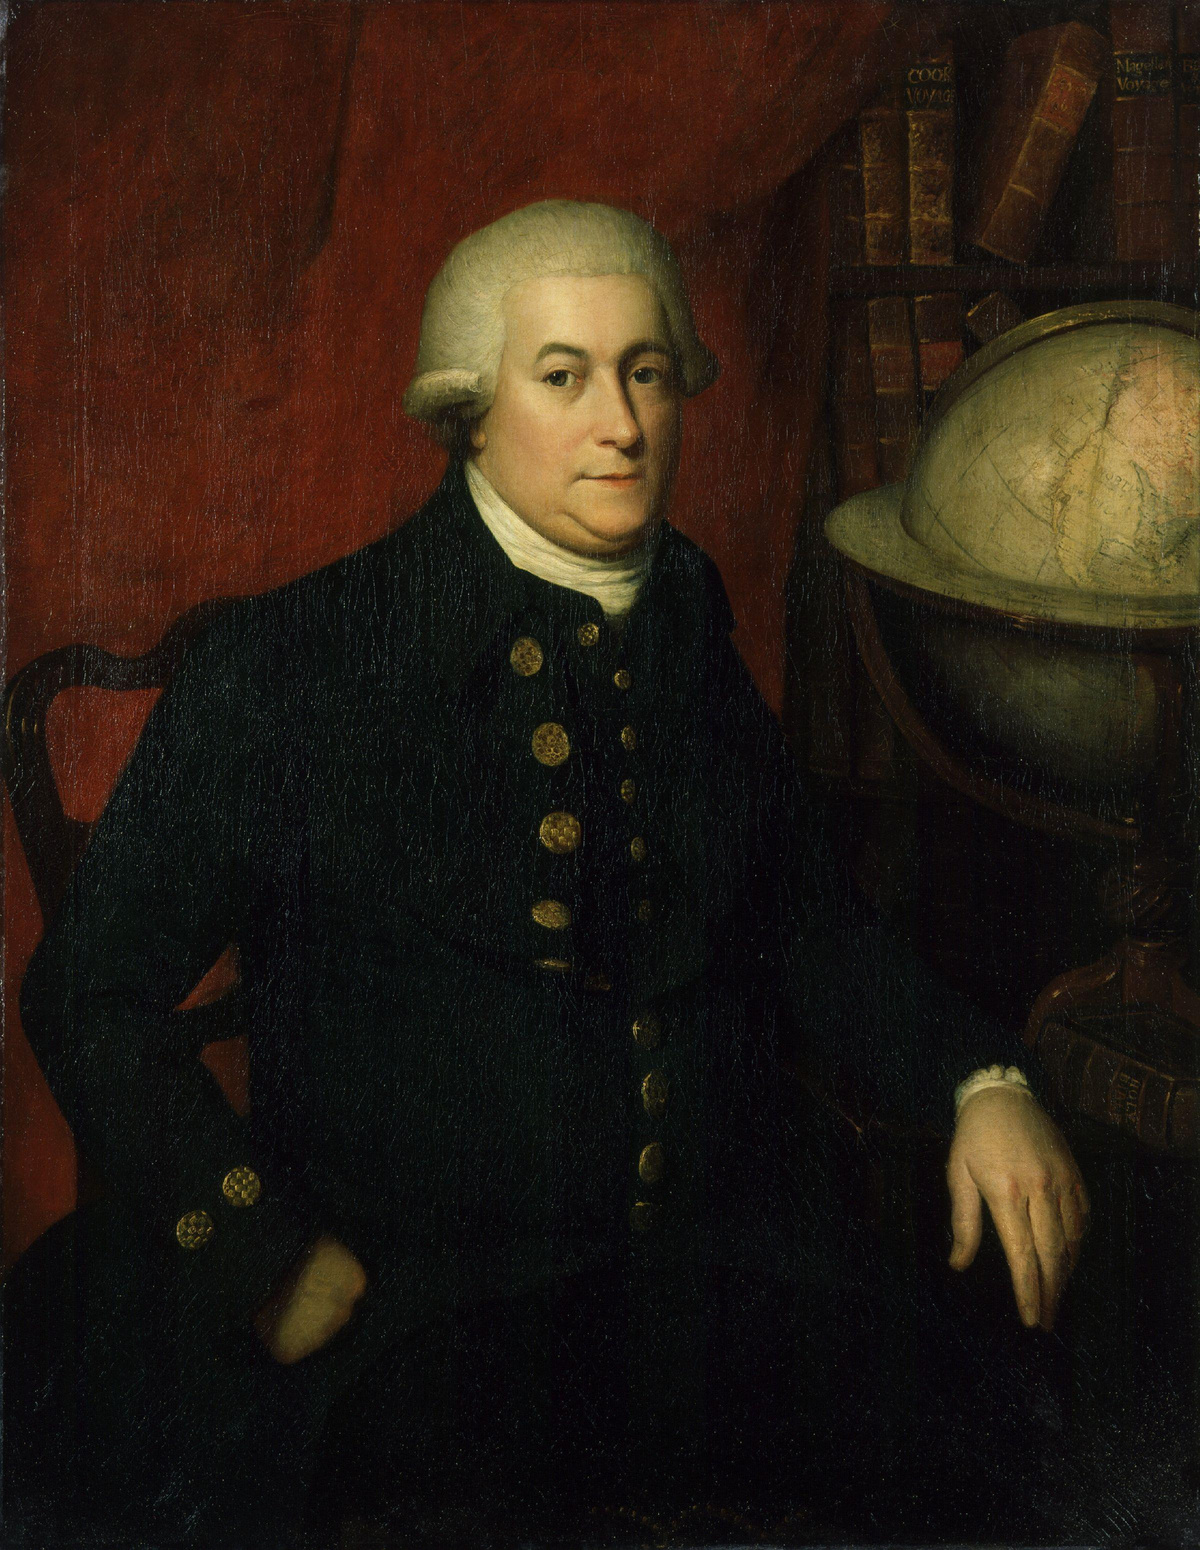 English officer and explorer George Vancouver, image via Wikipedia.